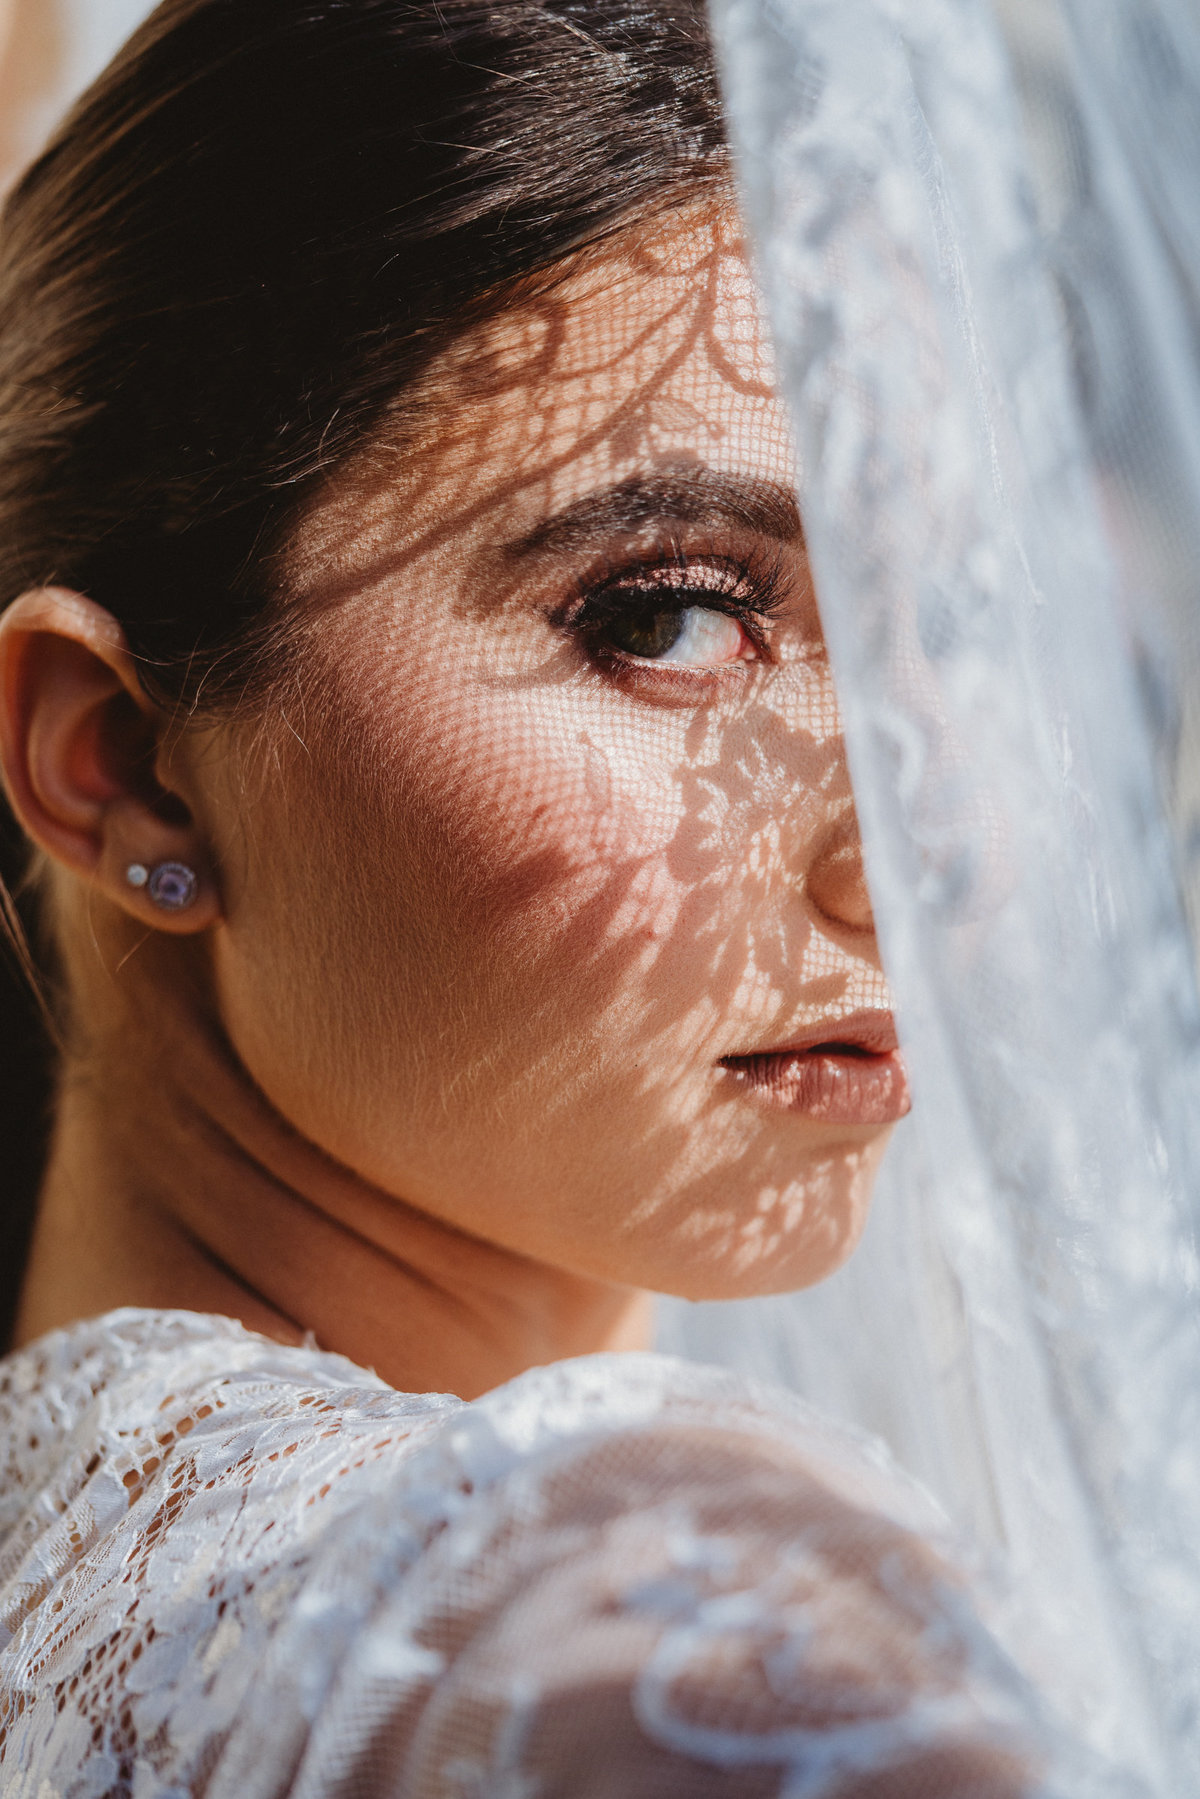 ARTISTIC CREATIVE BRIDAL PORTRAITS WEDDING PHOTOGRAPHER NYC